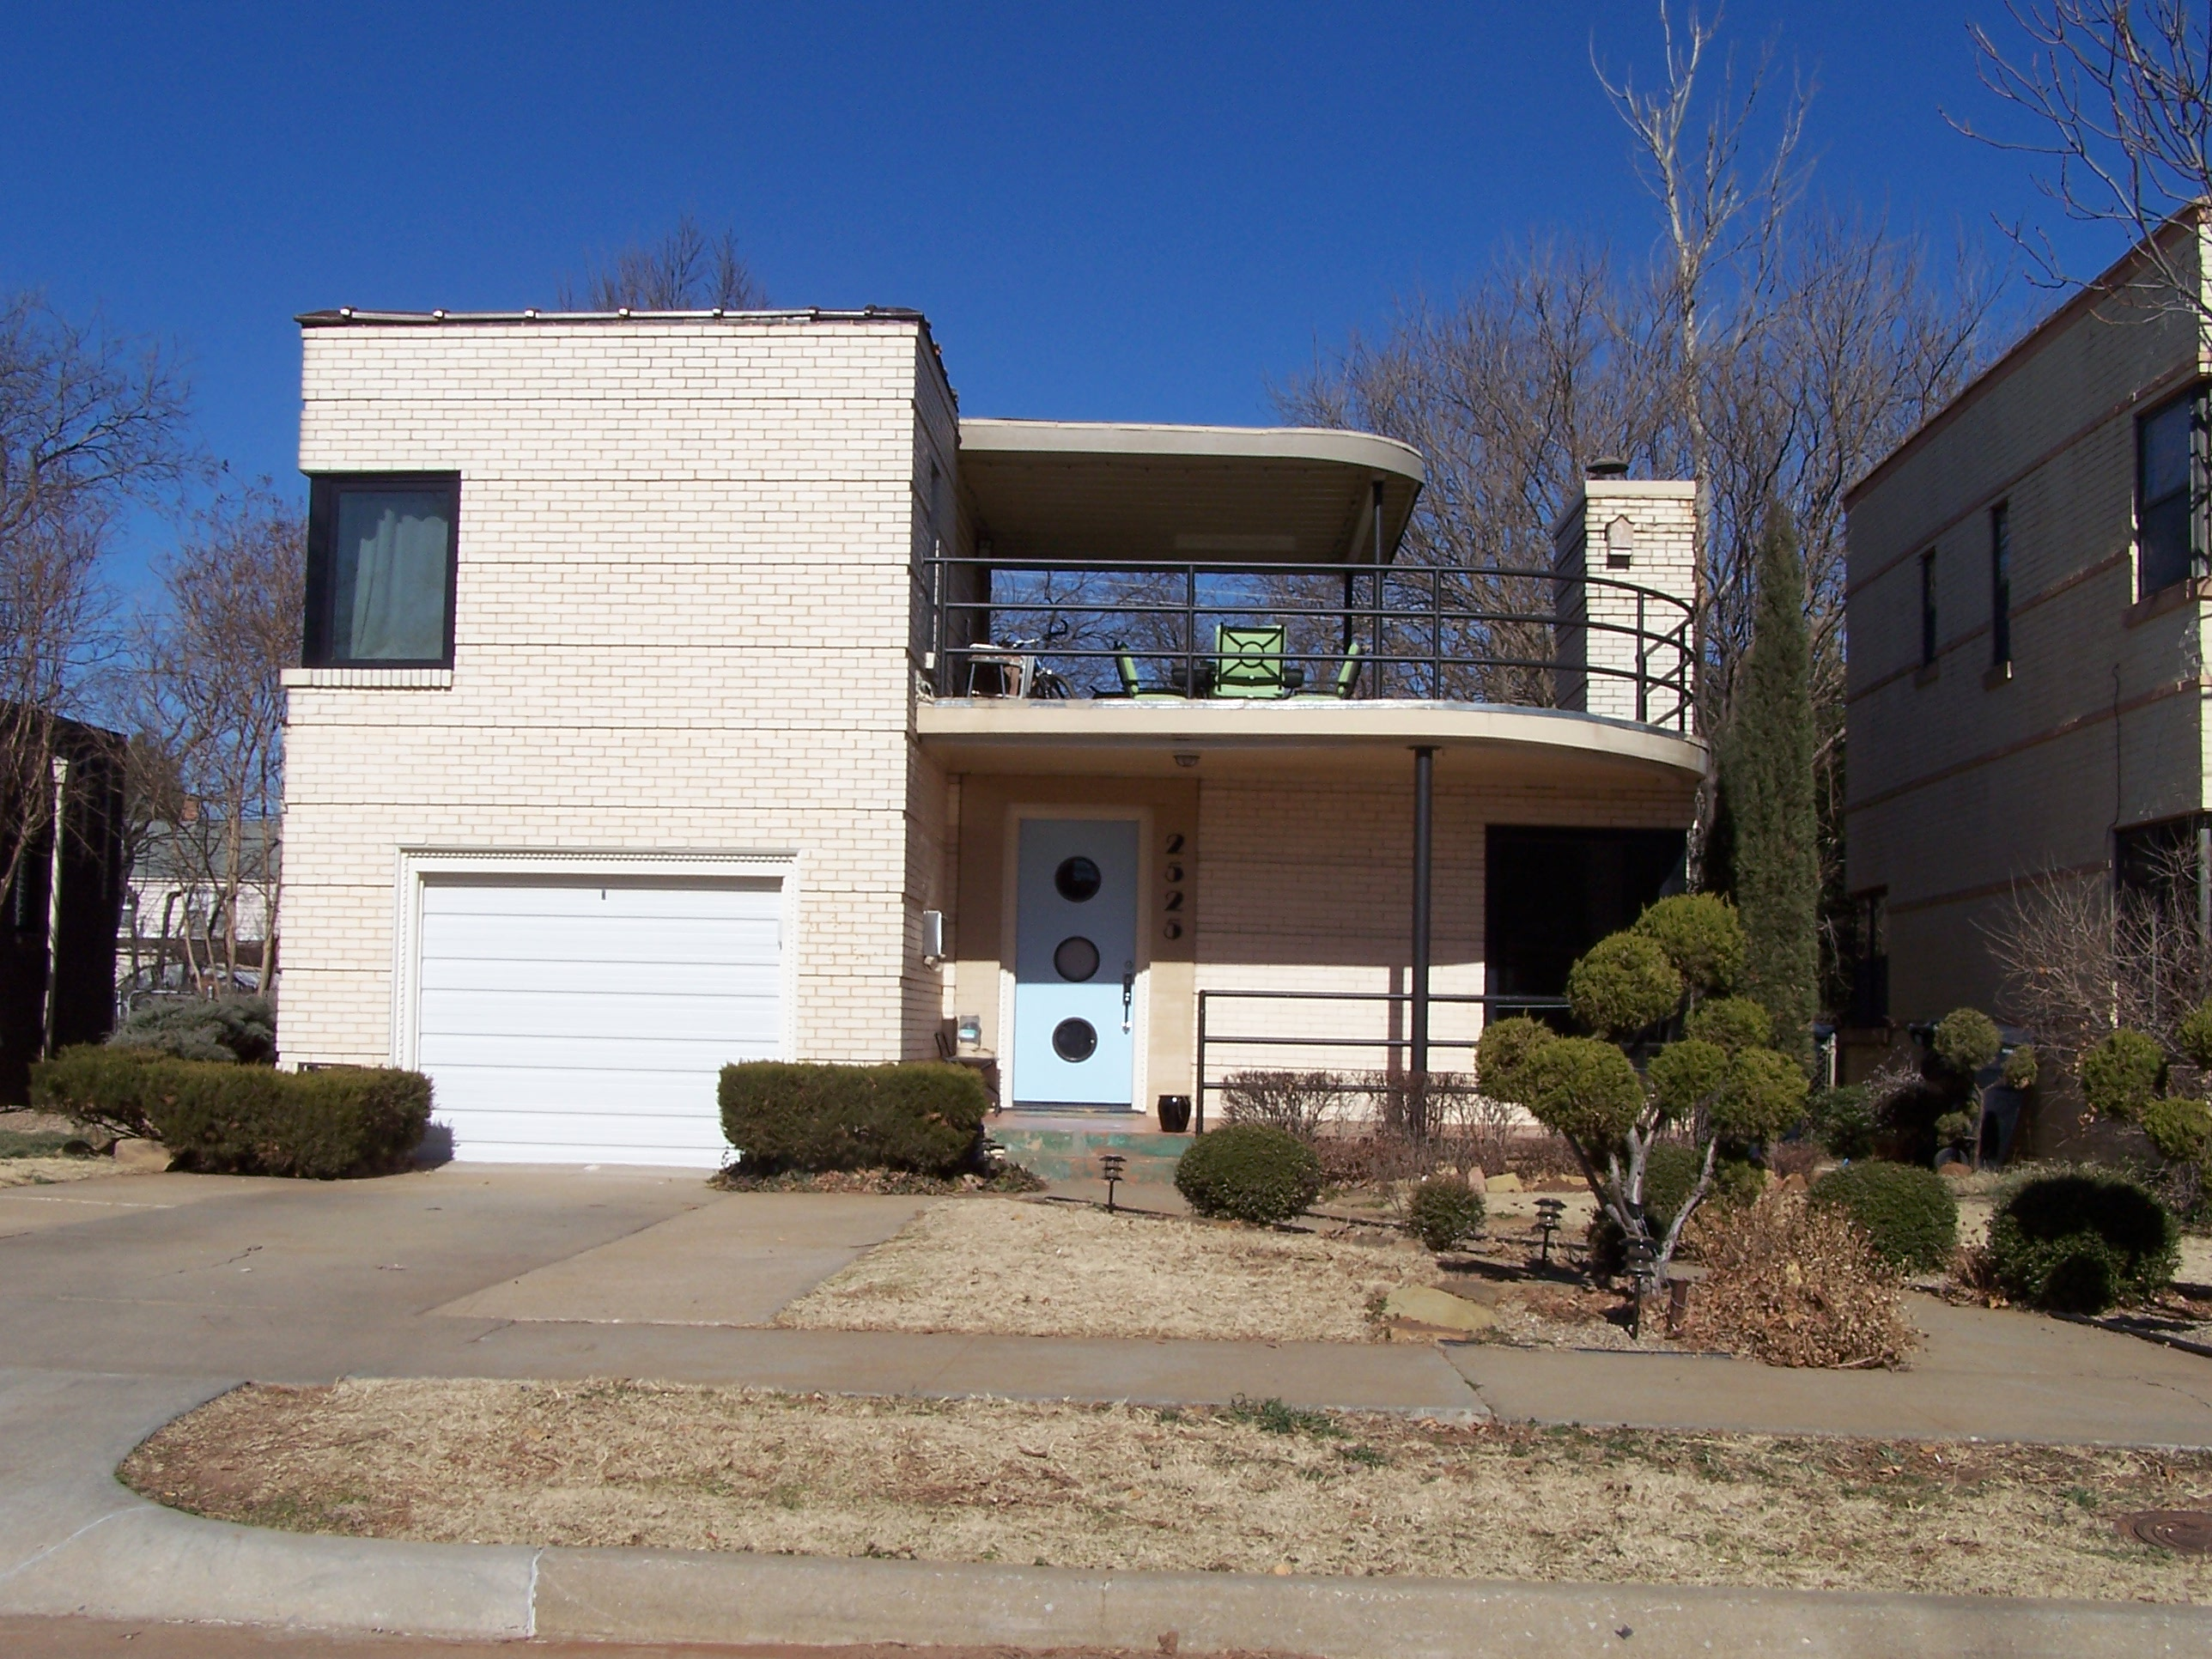 Outstanding Okc Mod Streamline Modern Houses Largest Home Design Picture Inspirations Pitcheantrous